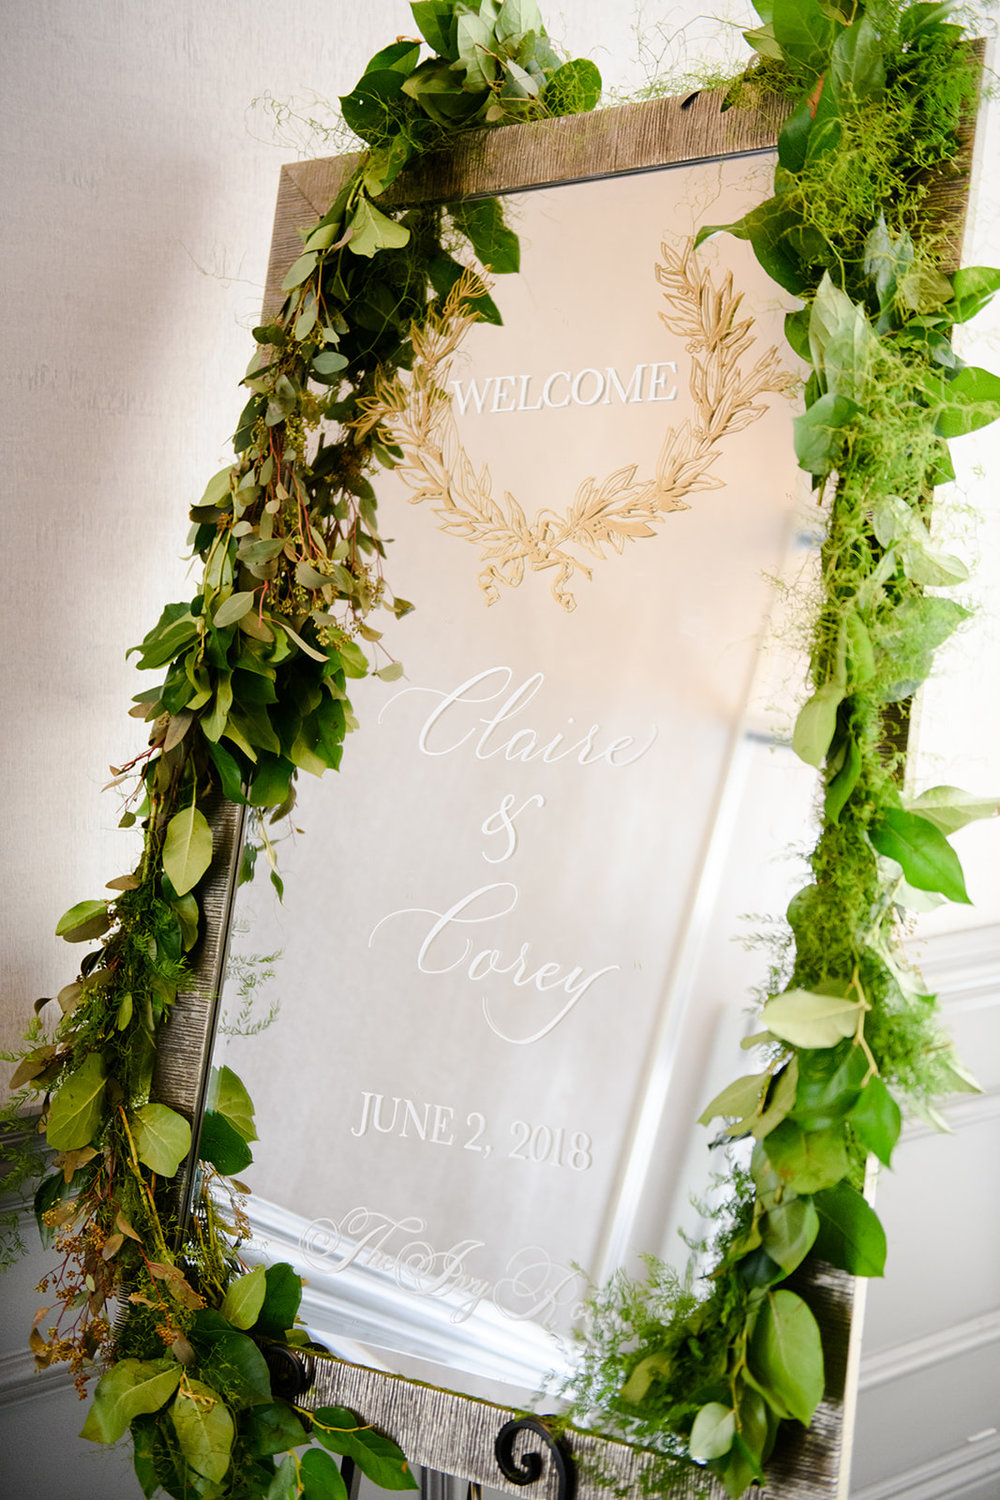 This mirror wedding sign is so beautiful!